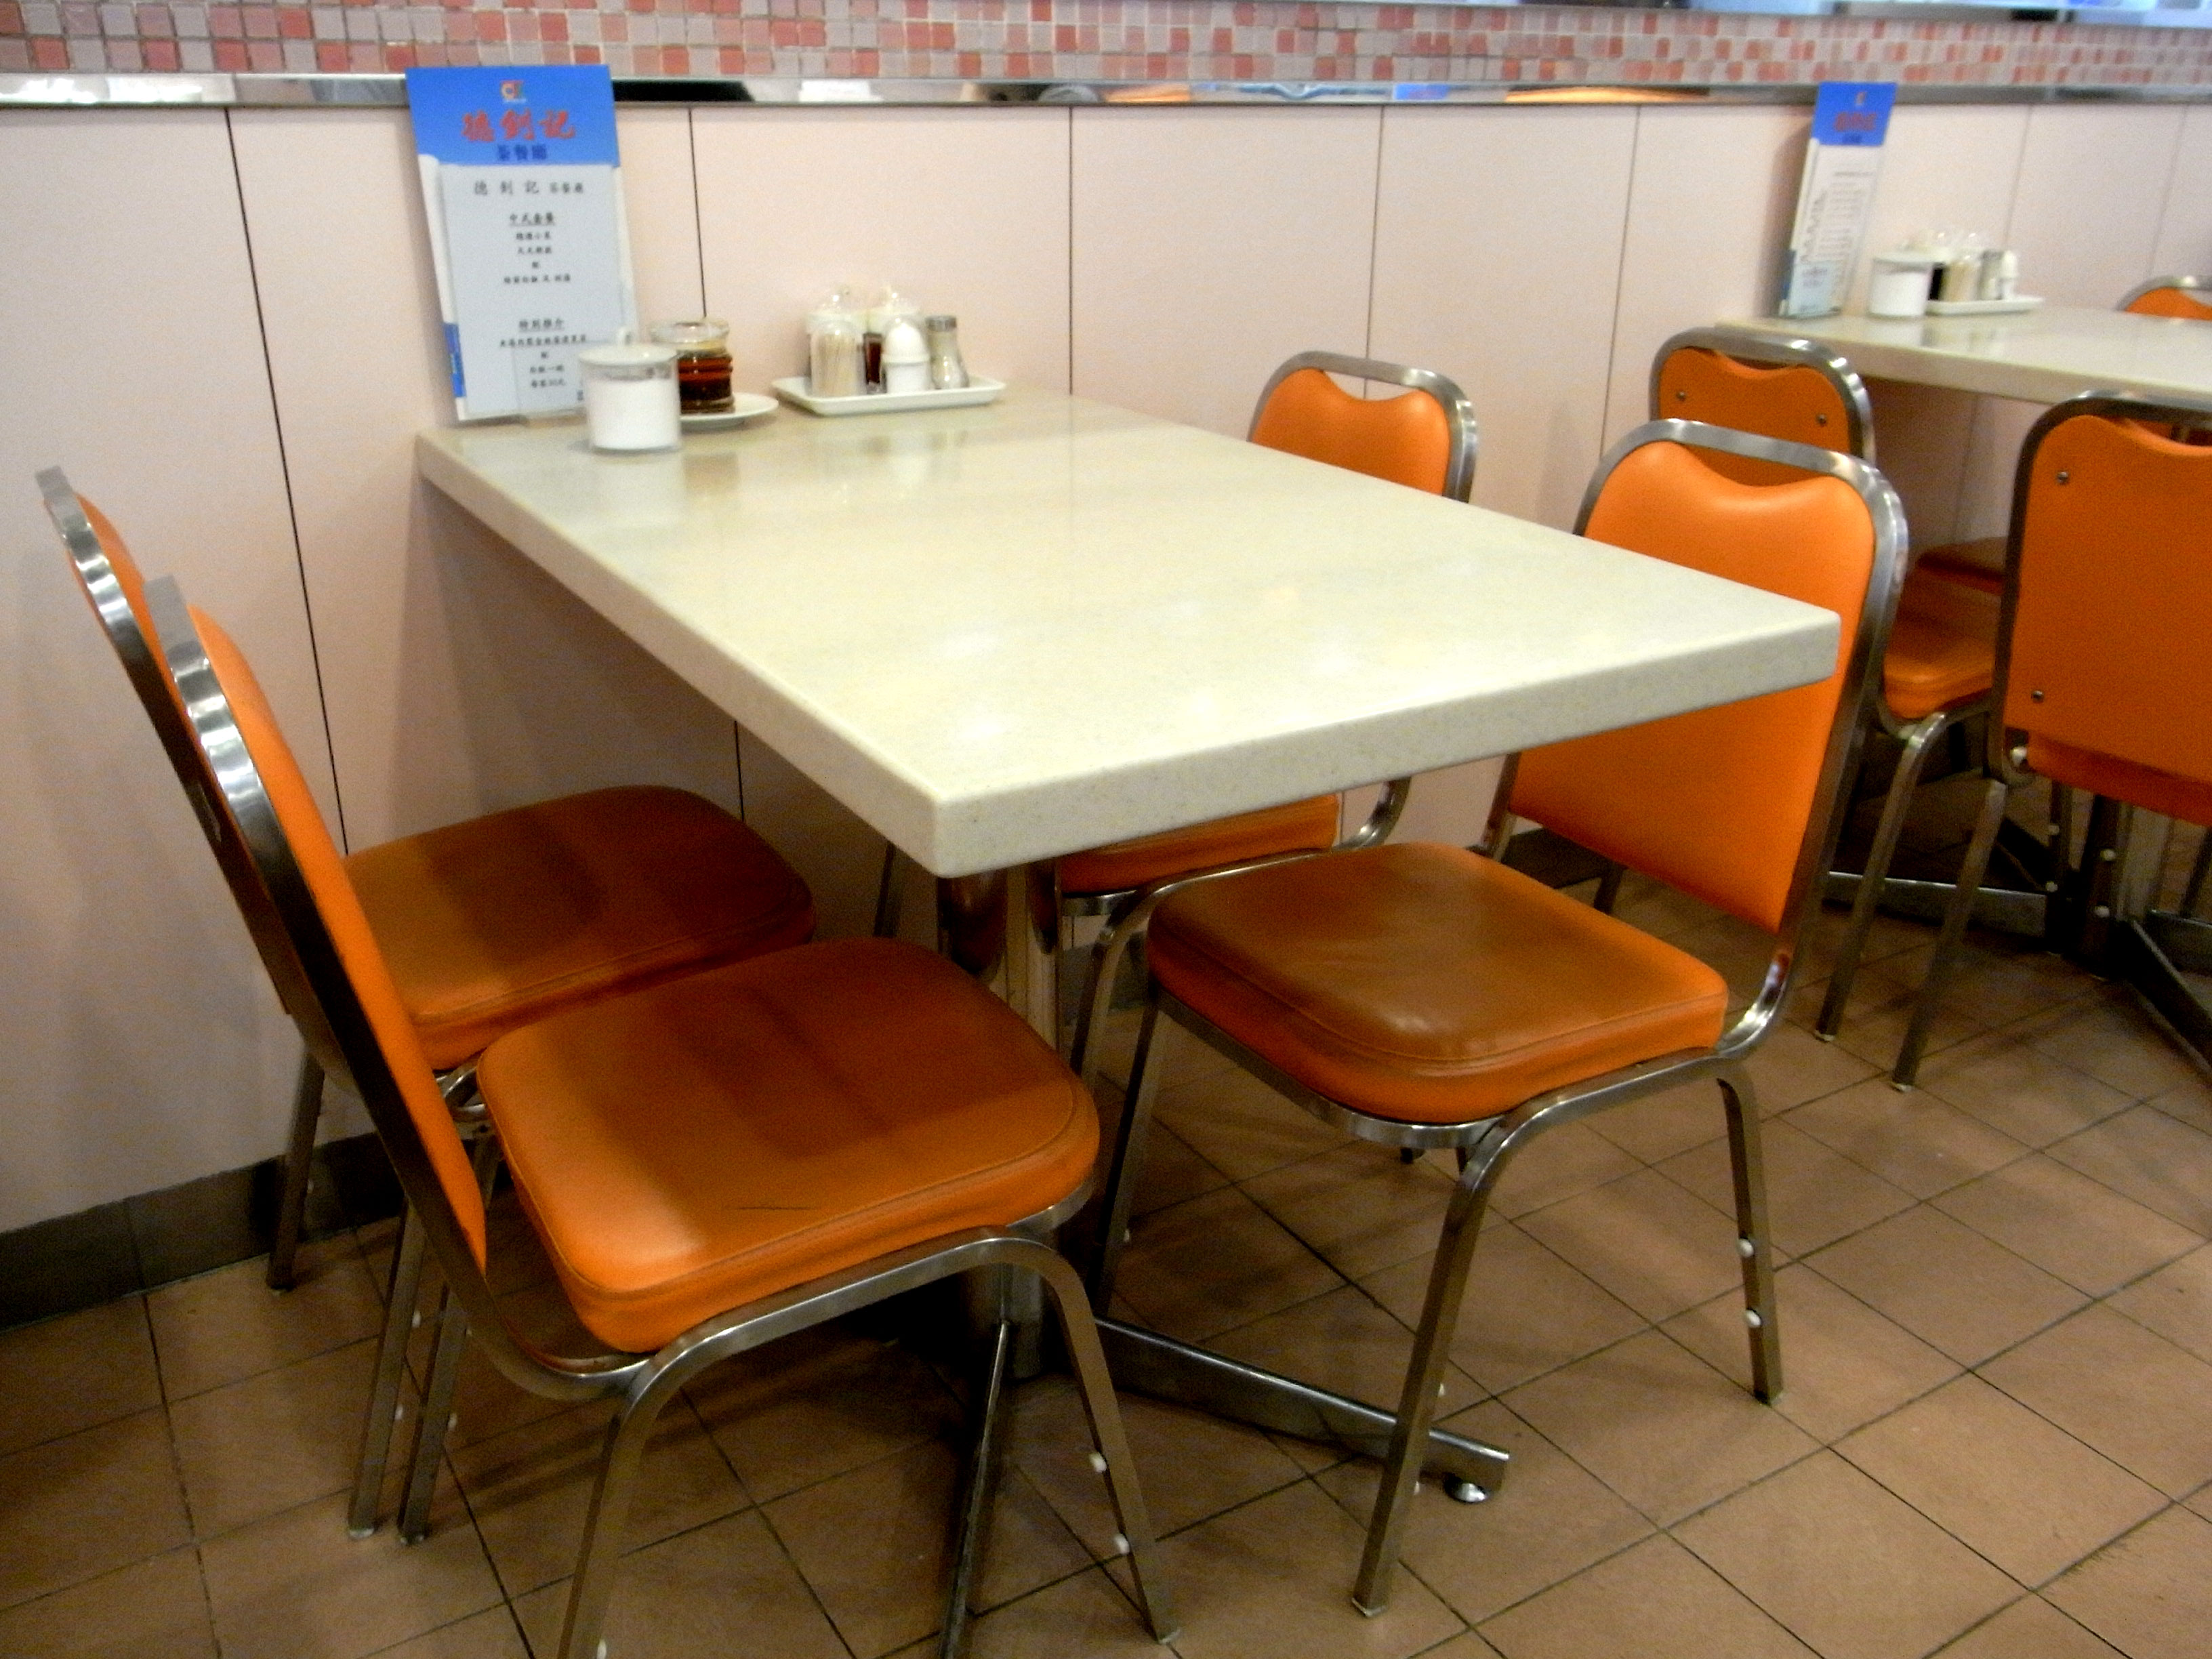 Restaurant Chairs And Tables Home Design And Decor Reviews